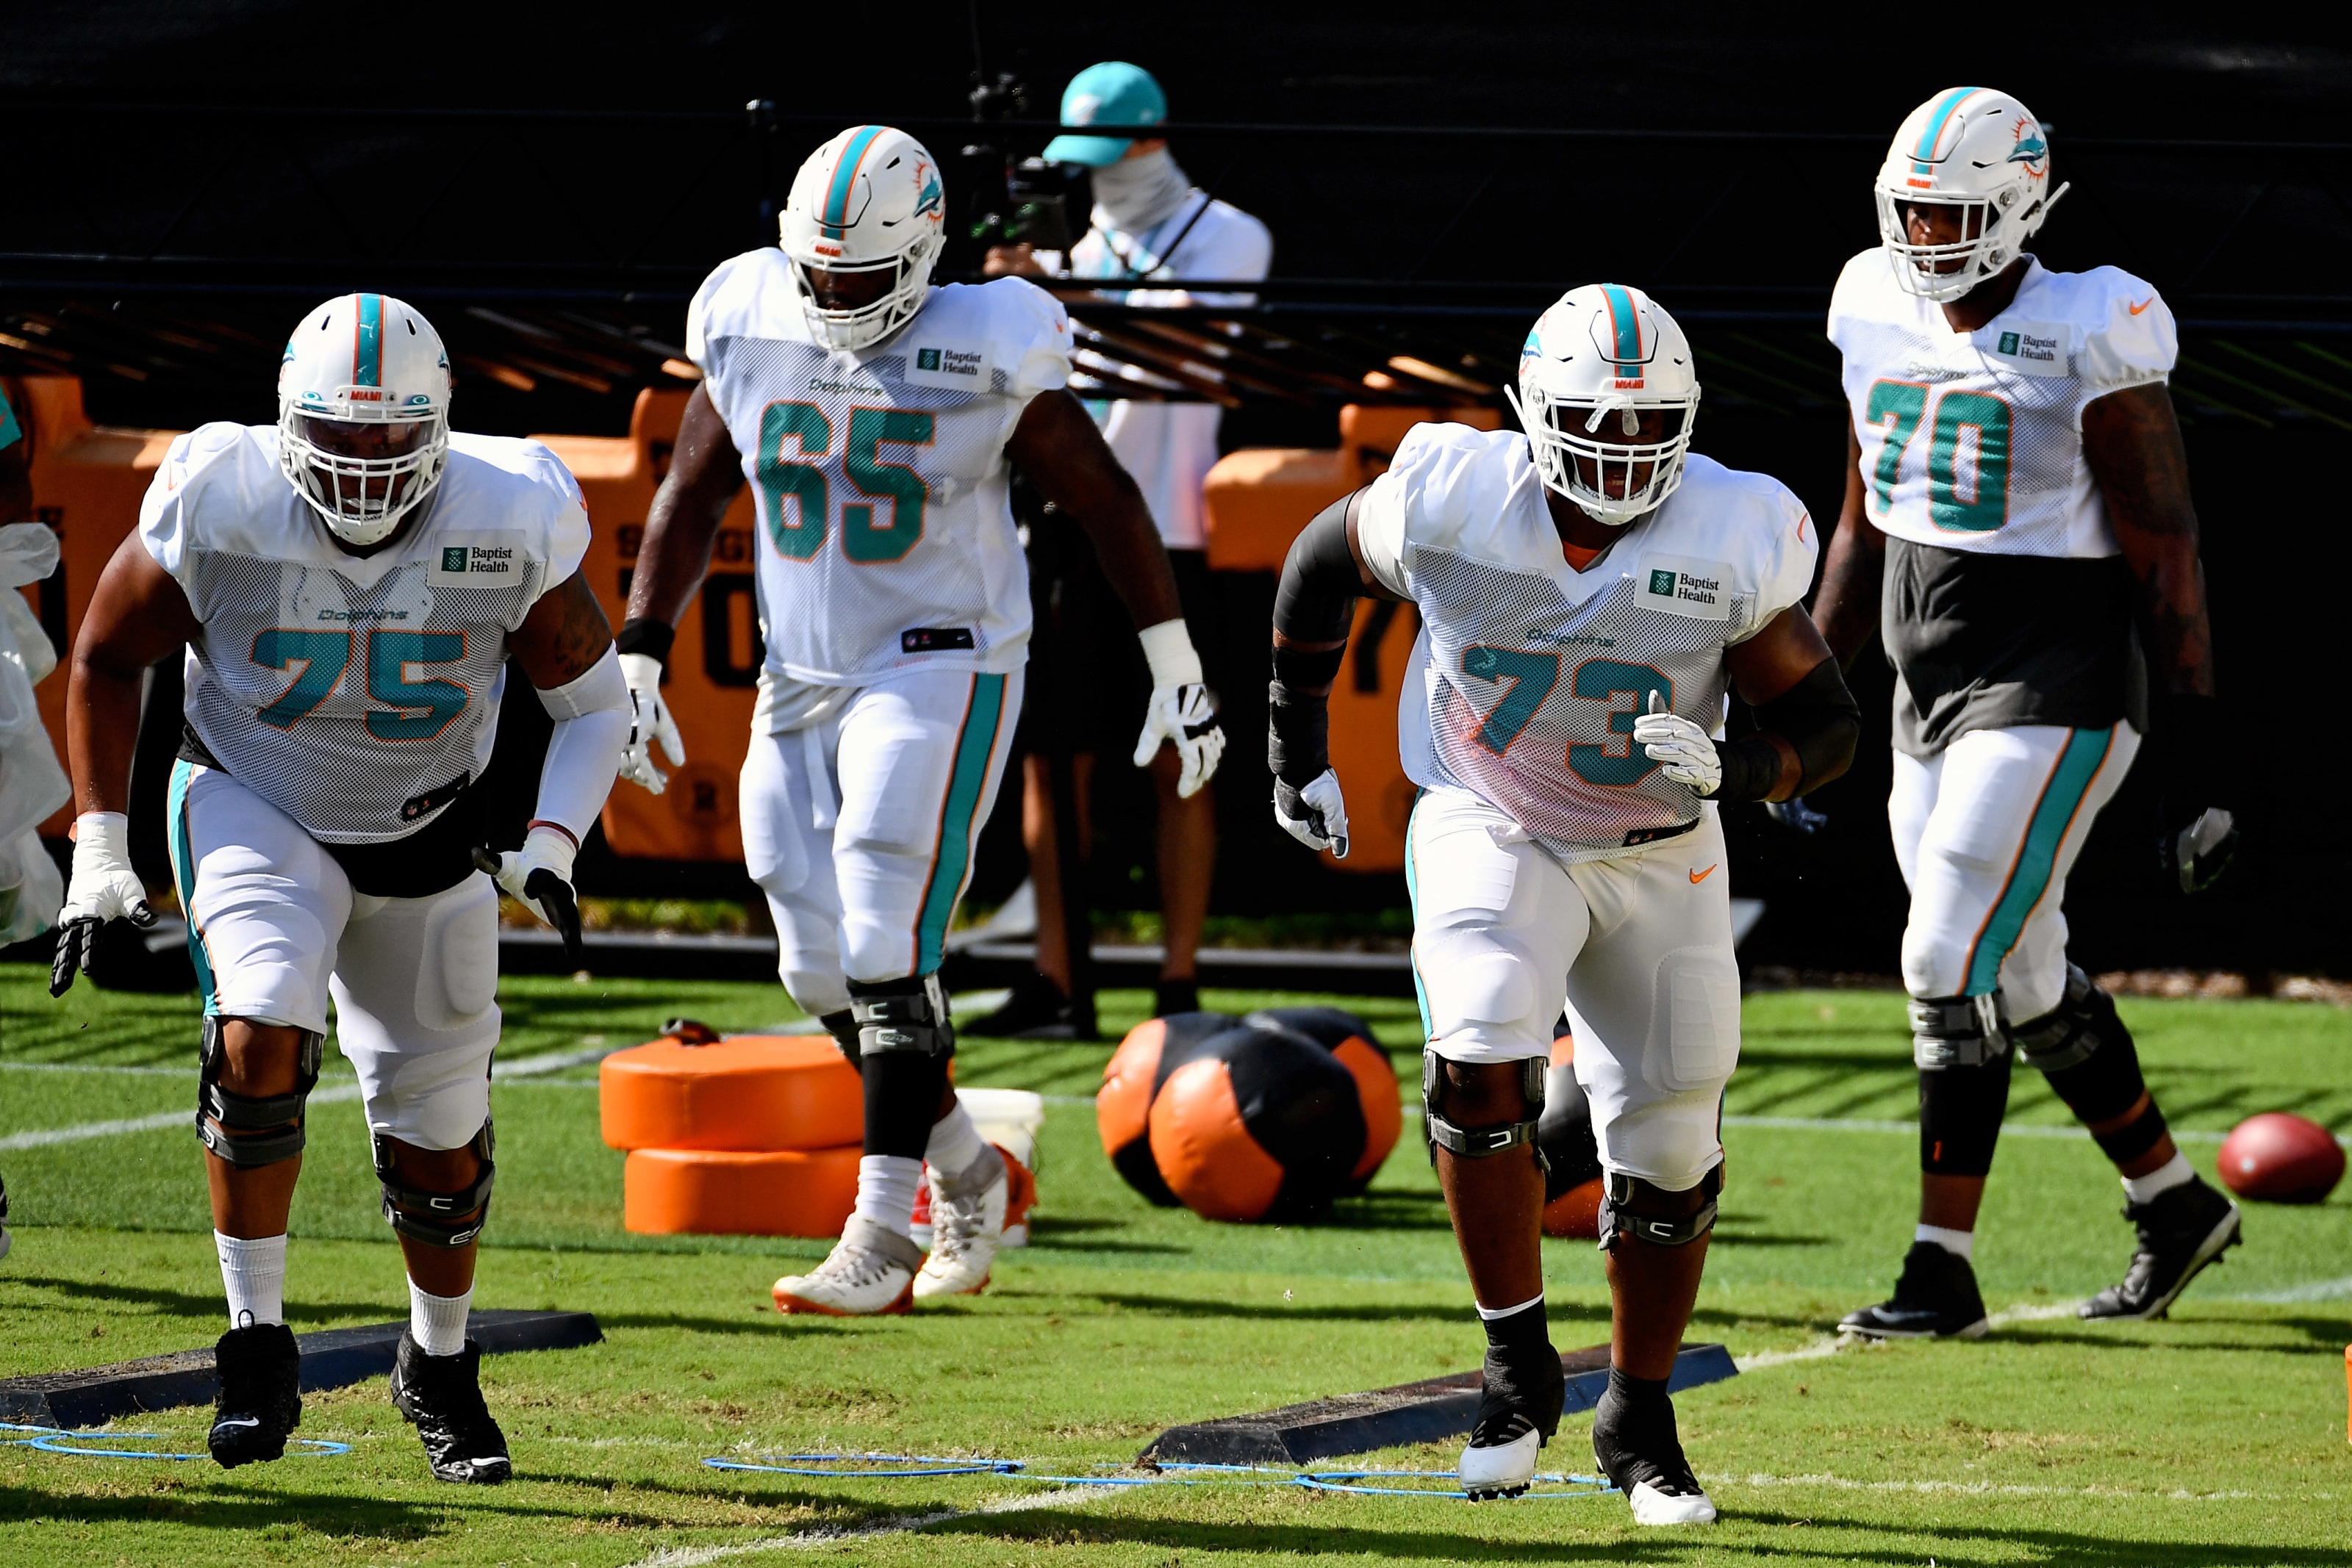 Miami Dolphins: 3 players that could be cut now that Fluker is on the roster